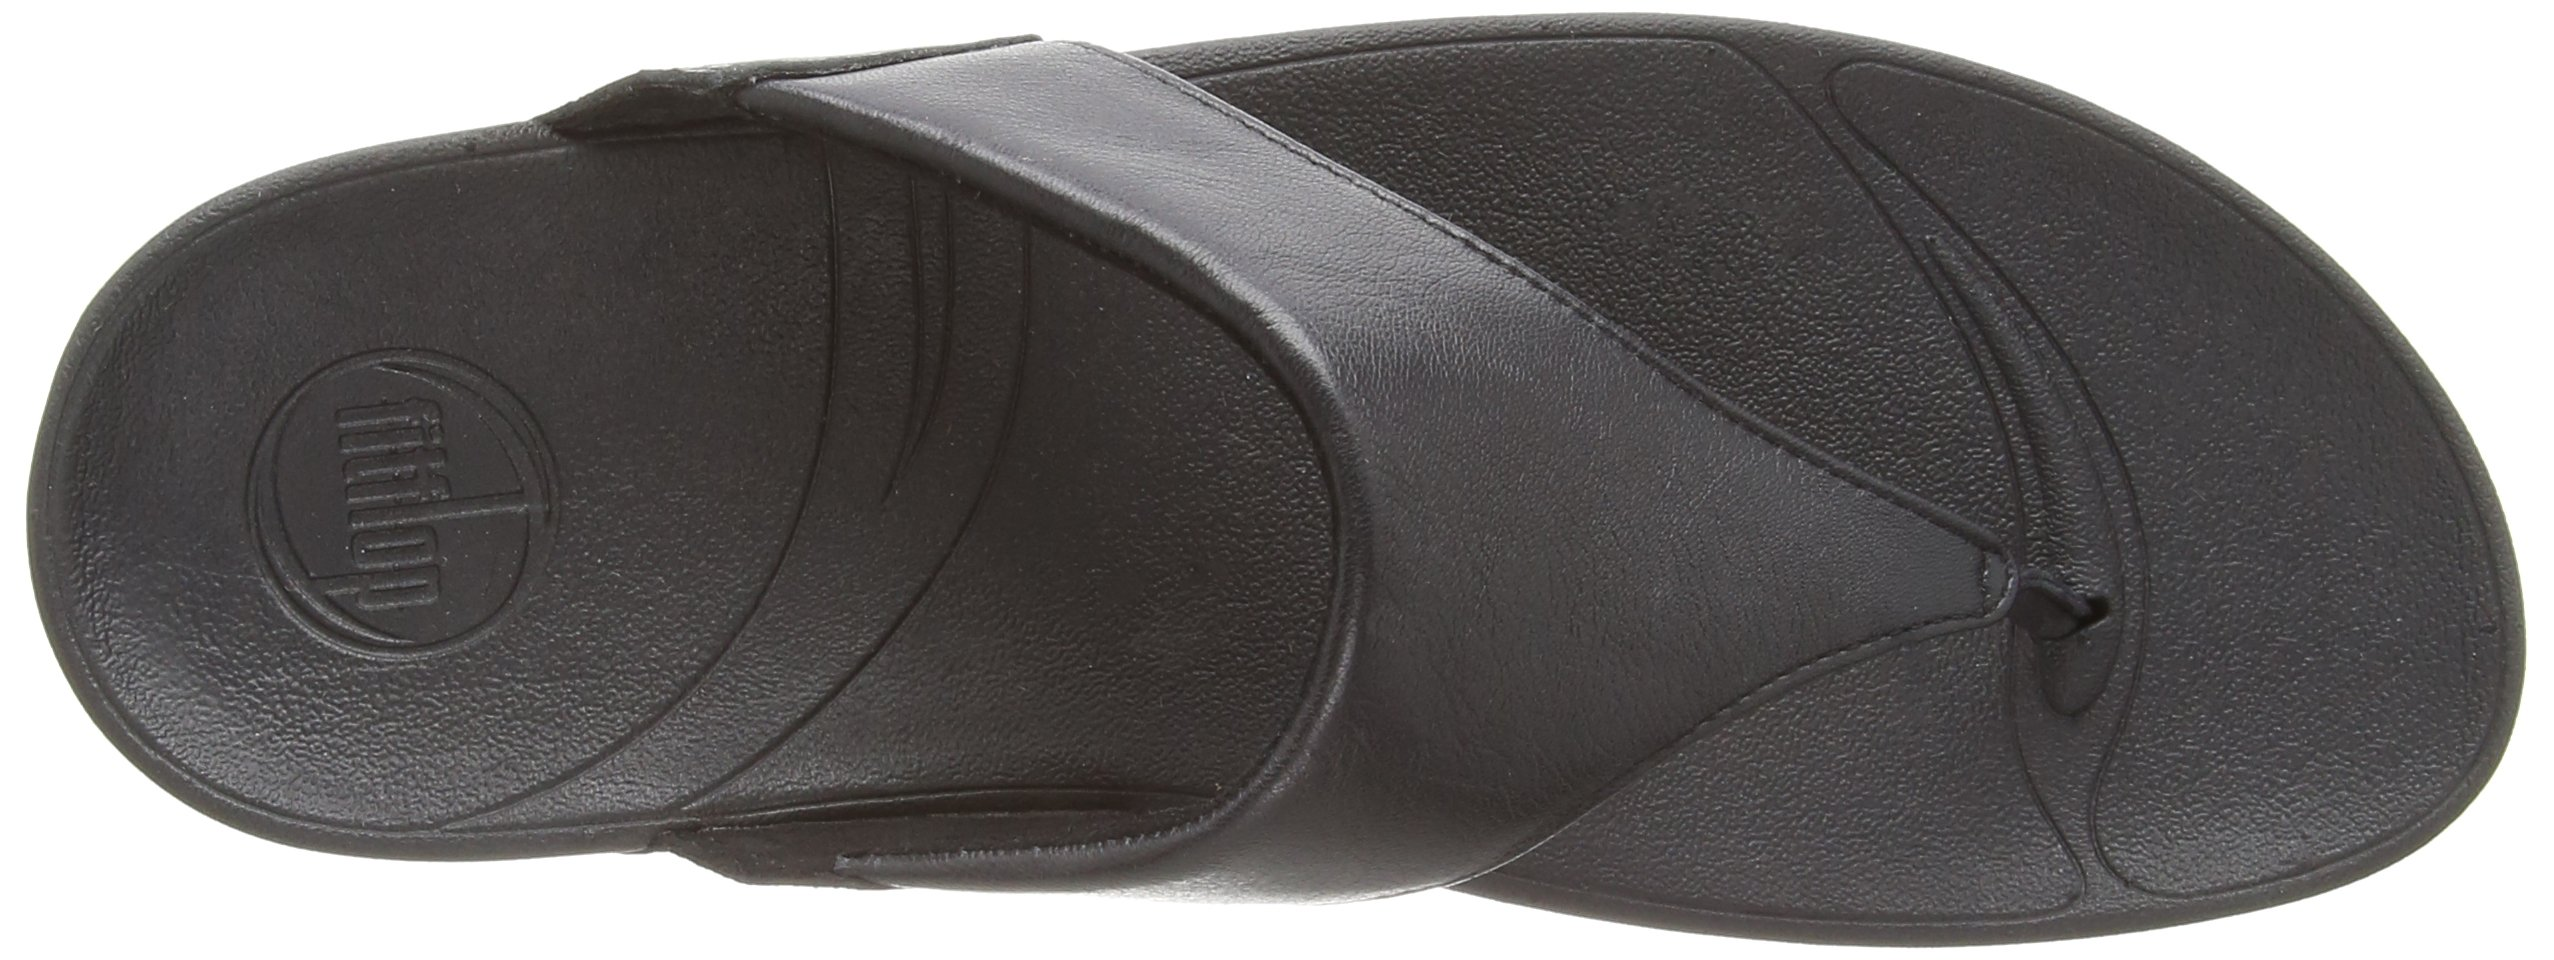 FitFlop Women's Lulu Thong Sandal,Black,9 M US by FITFLOP